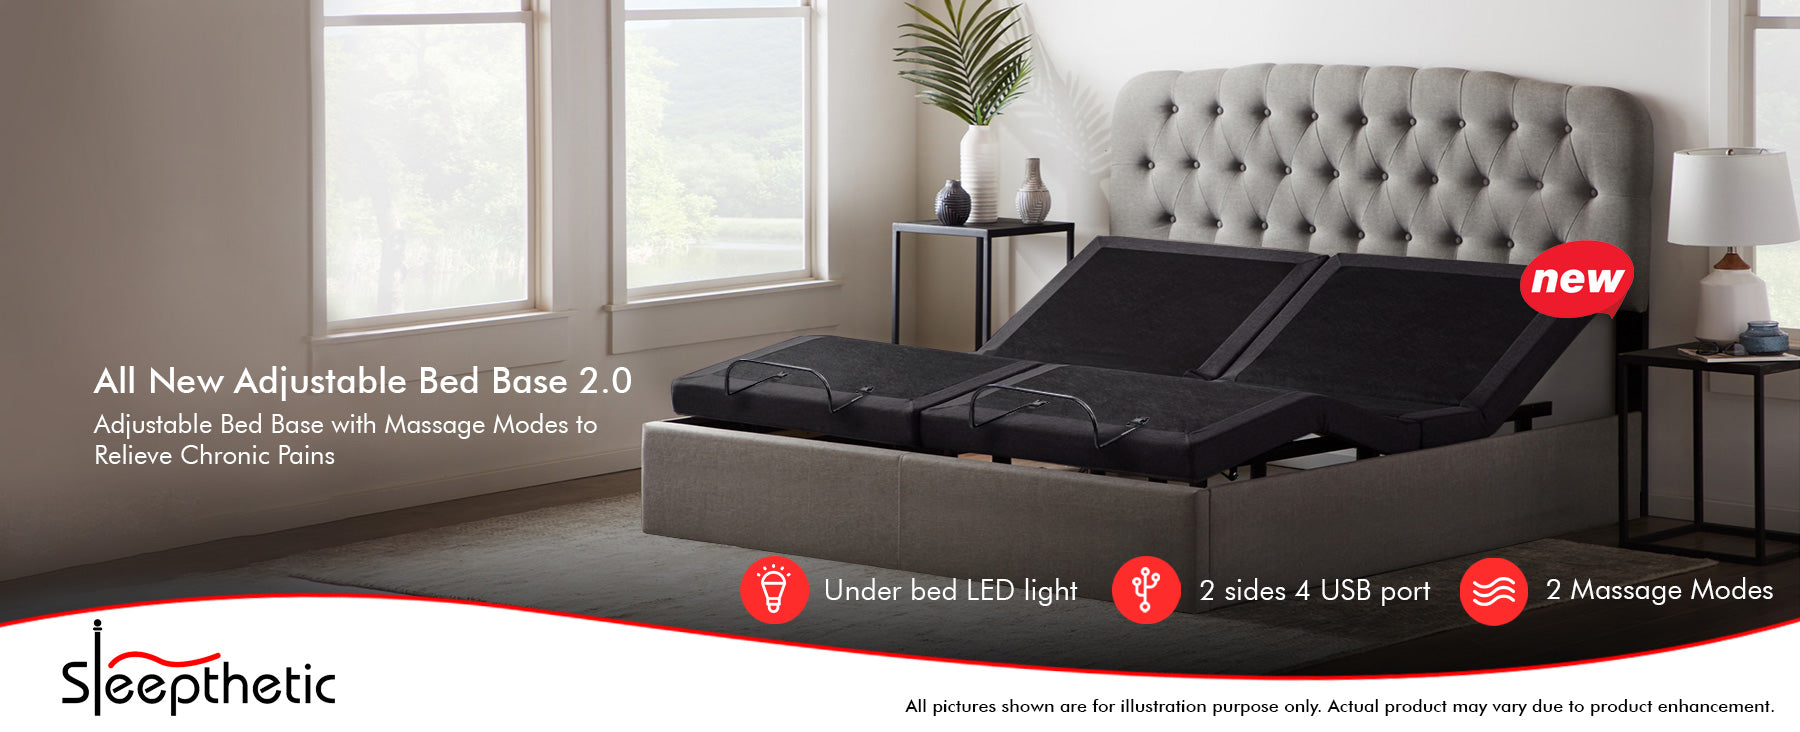 Sleepthetic™ Adjustable Bed Base Version 2.0